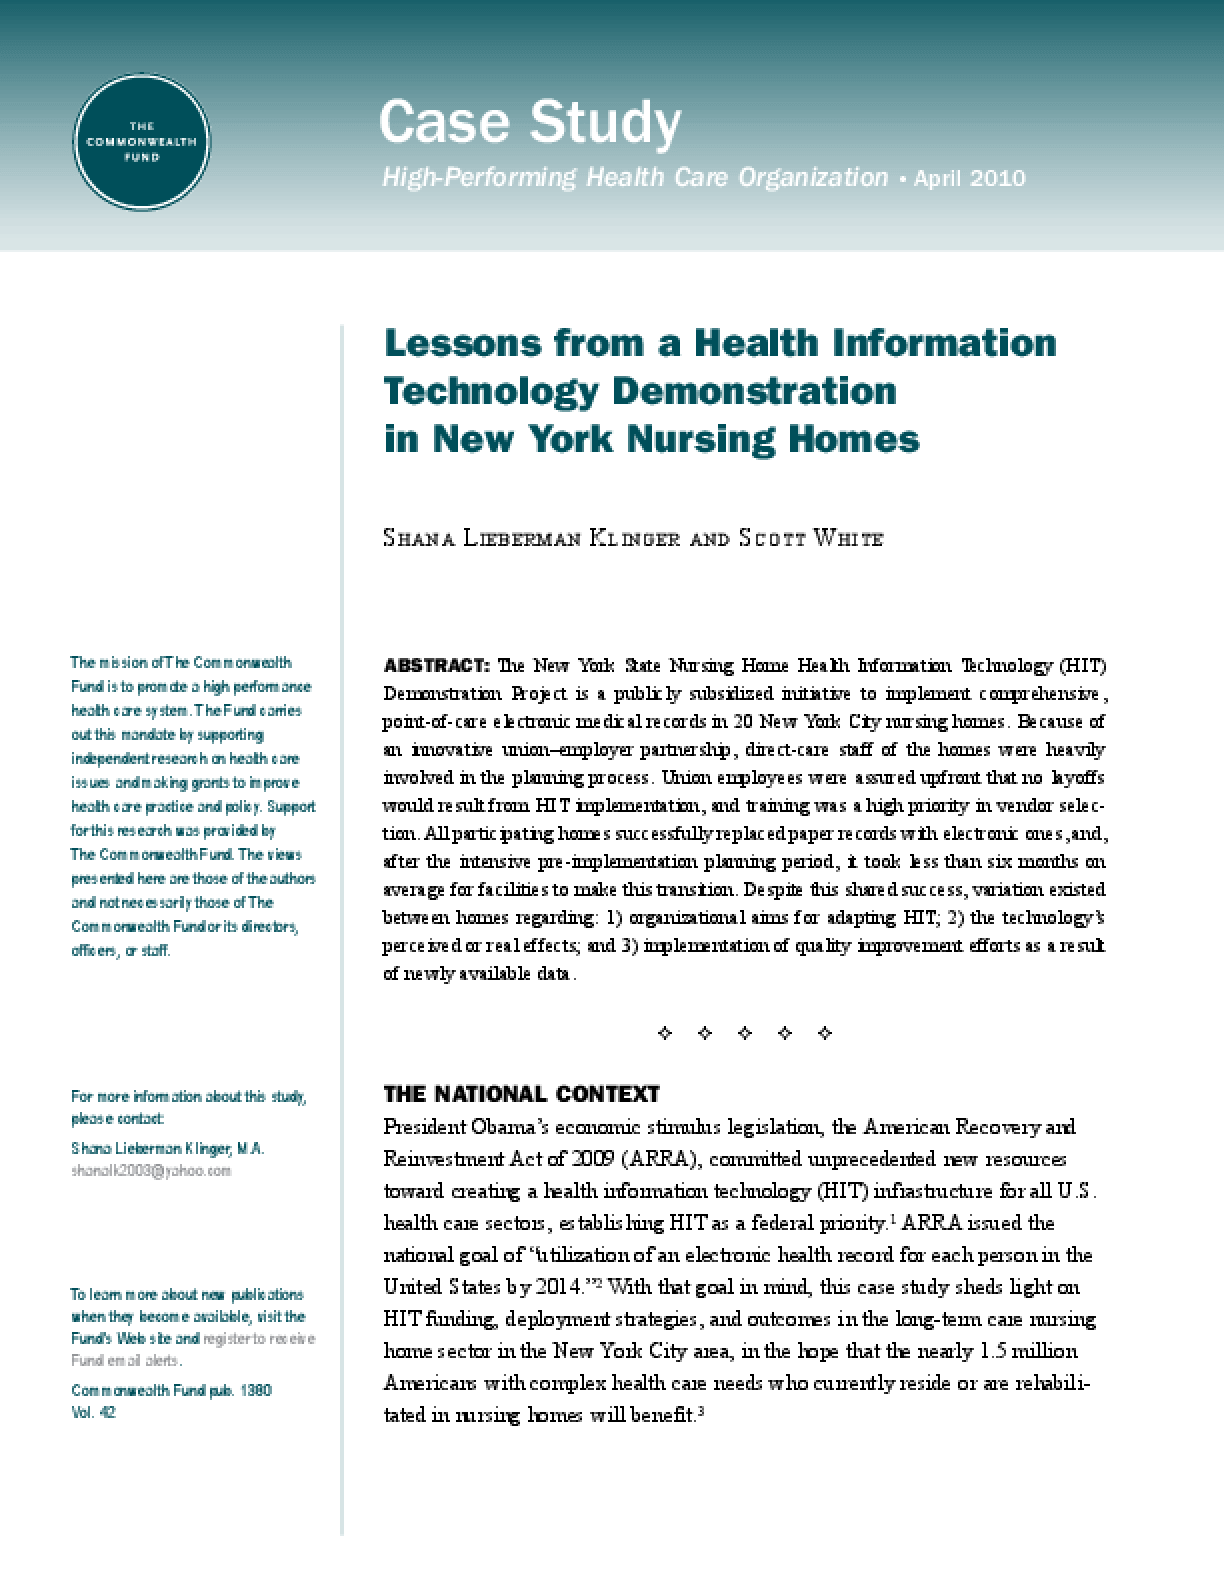 Lessons From a Health Information Technology Demonstration in New York Nursing Homes